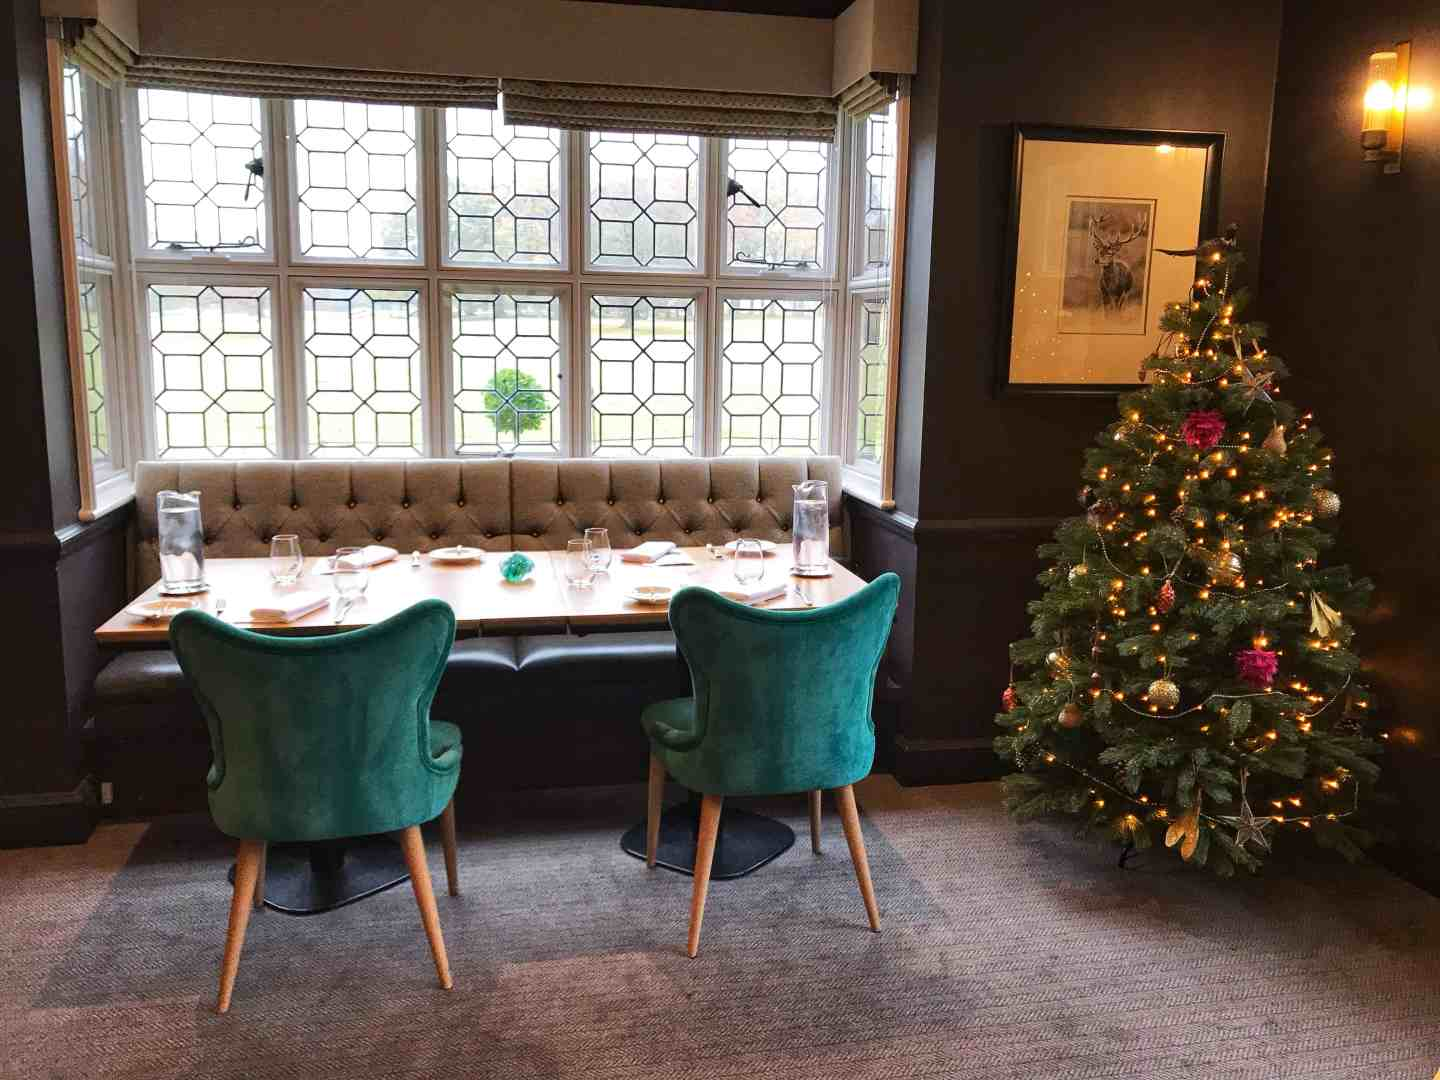 Chic and cosy decor at Paris House, Woburn